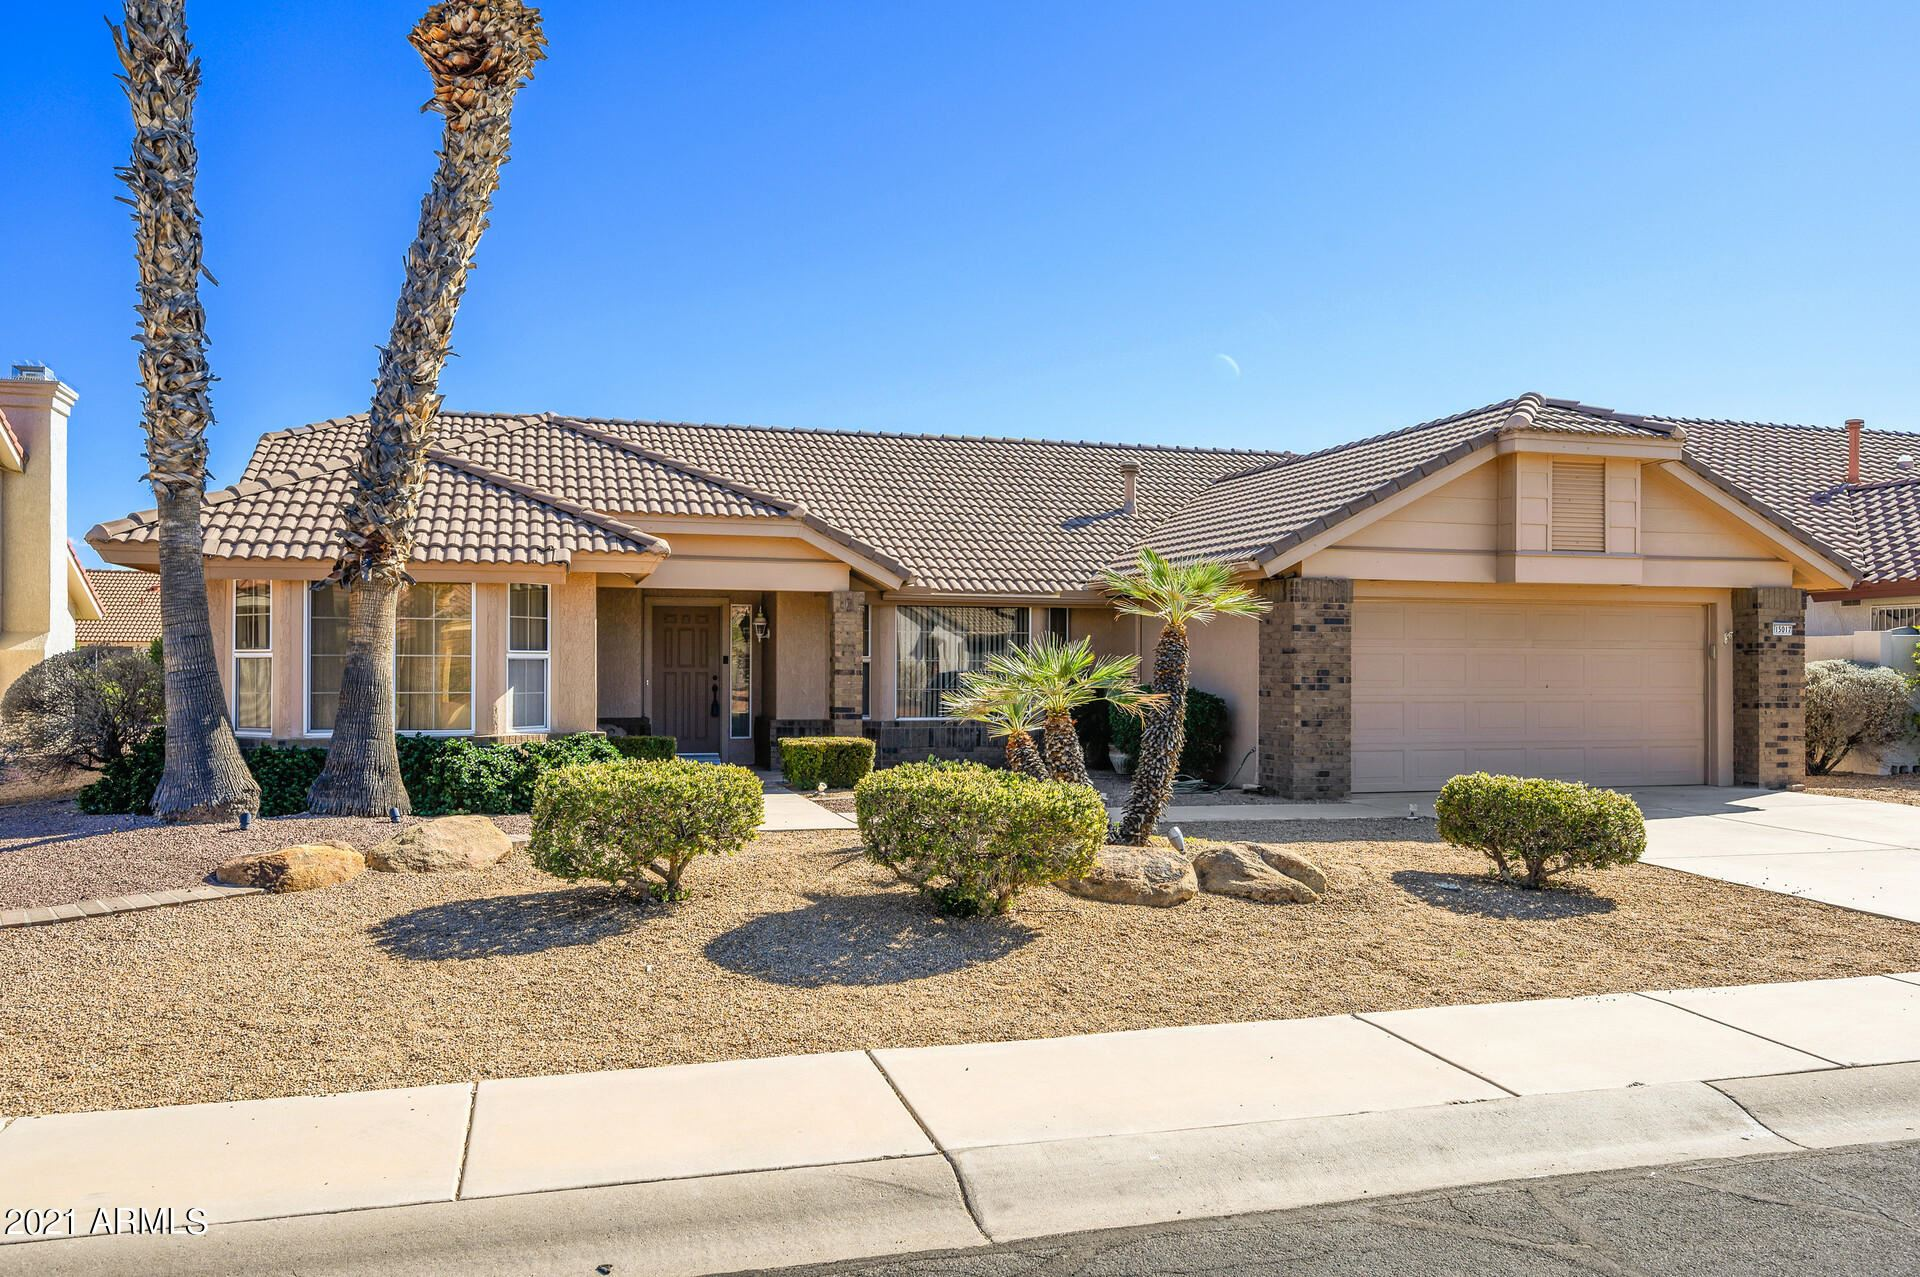 Photo of 15017 W GREYSTONE Drive, Sun City West, AZ 85375 (MLS # 6200682)